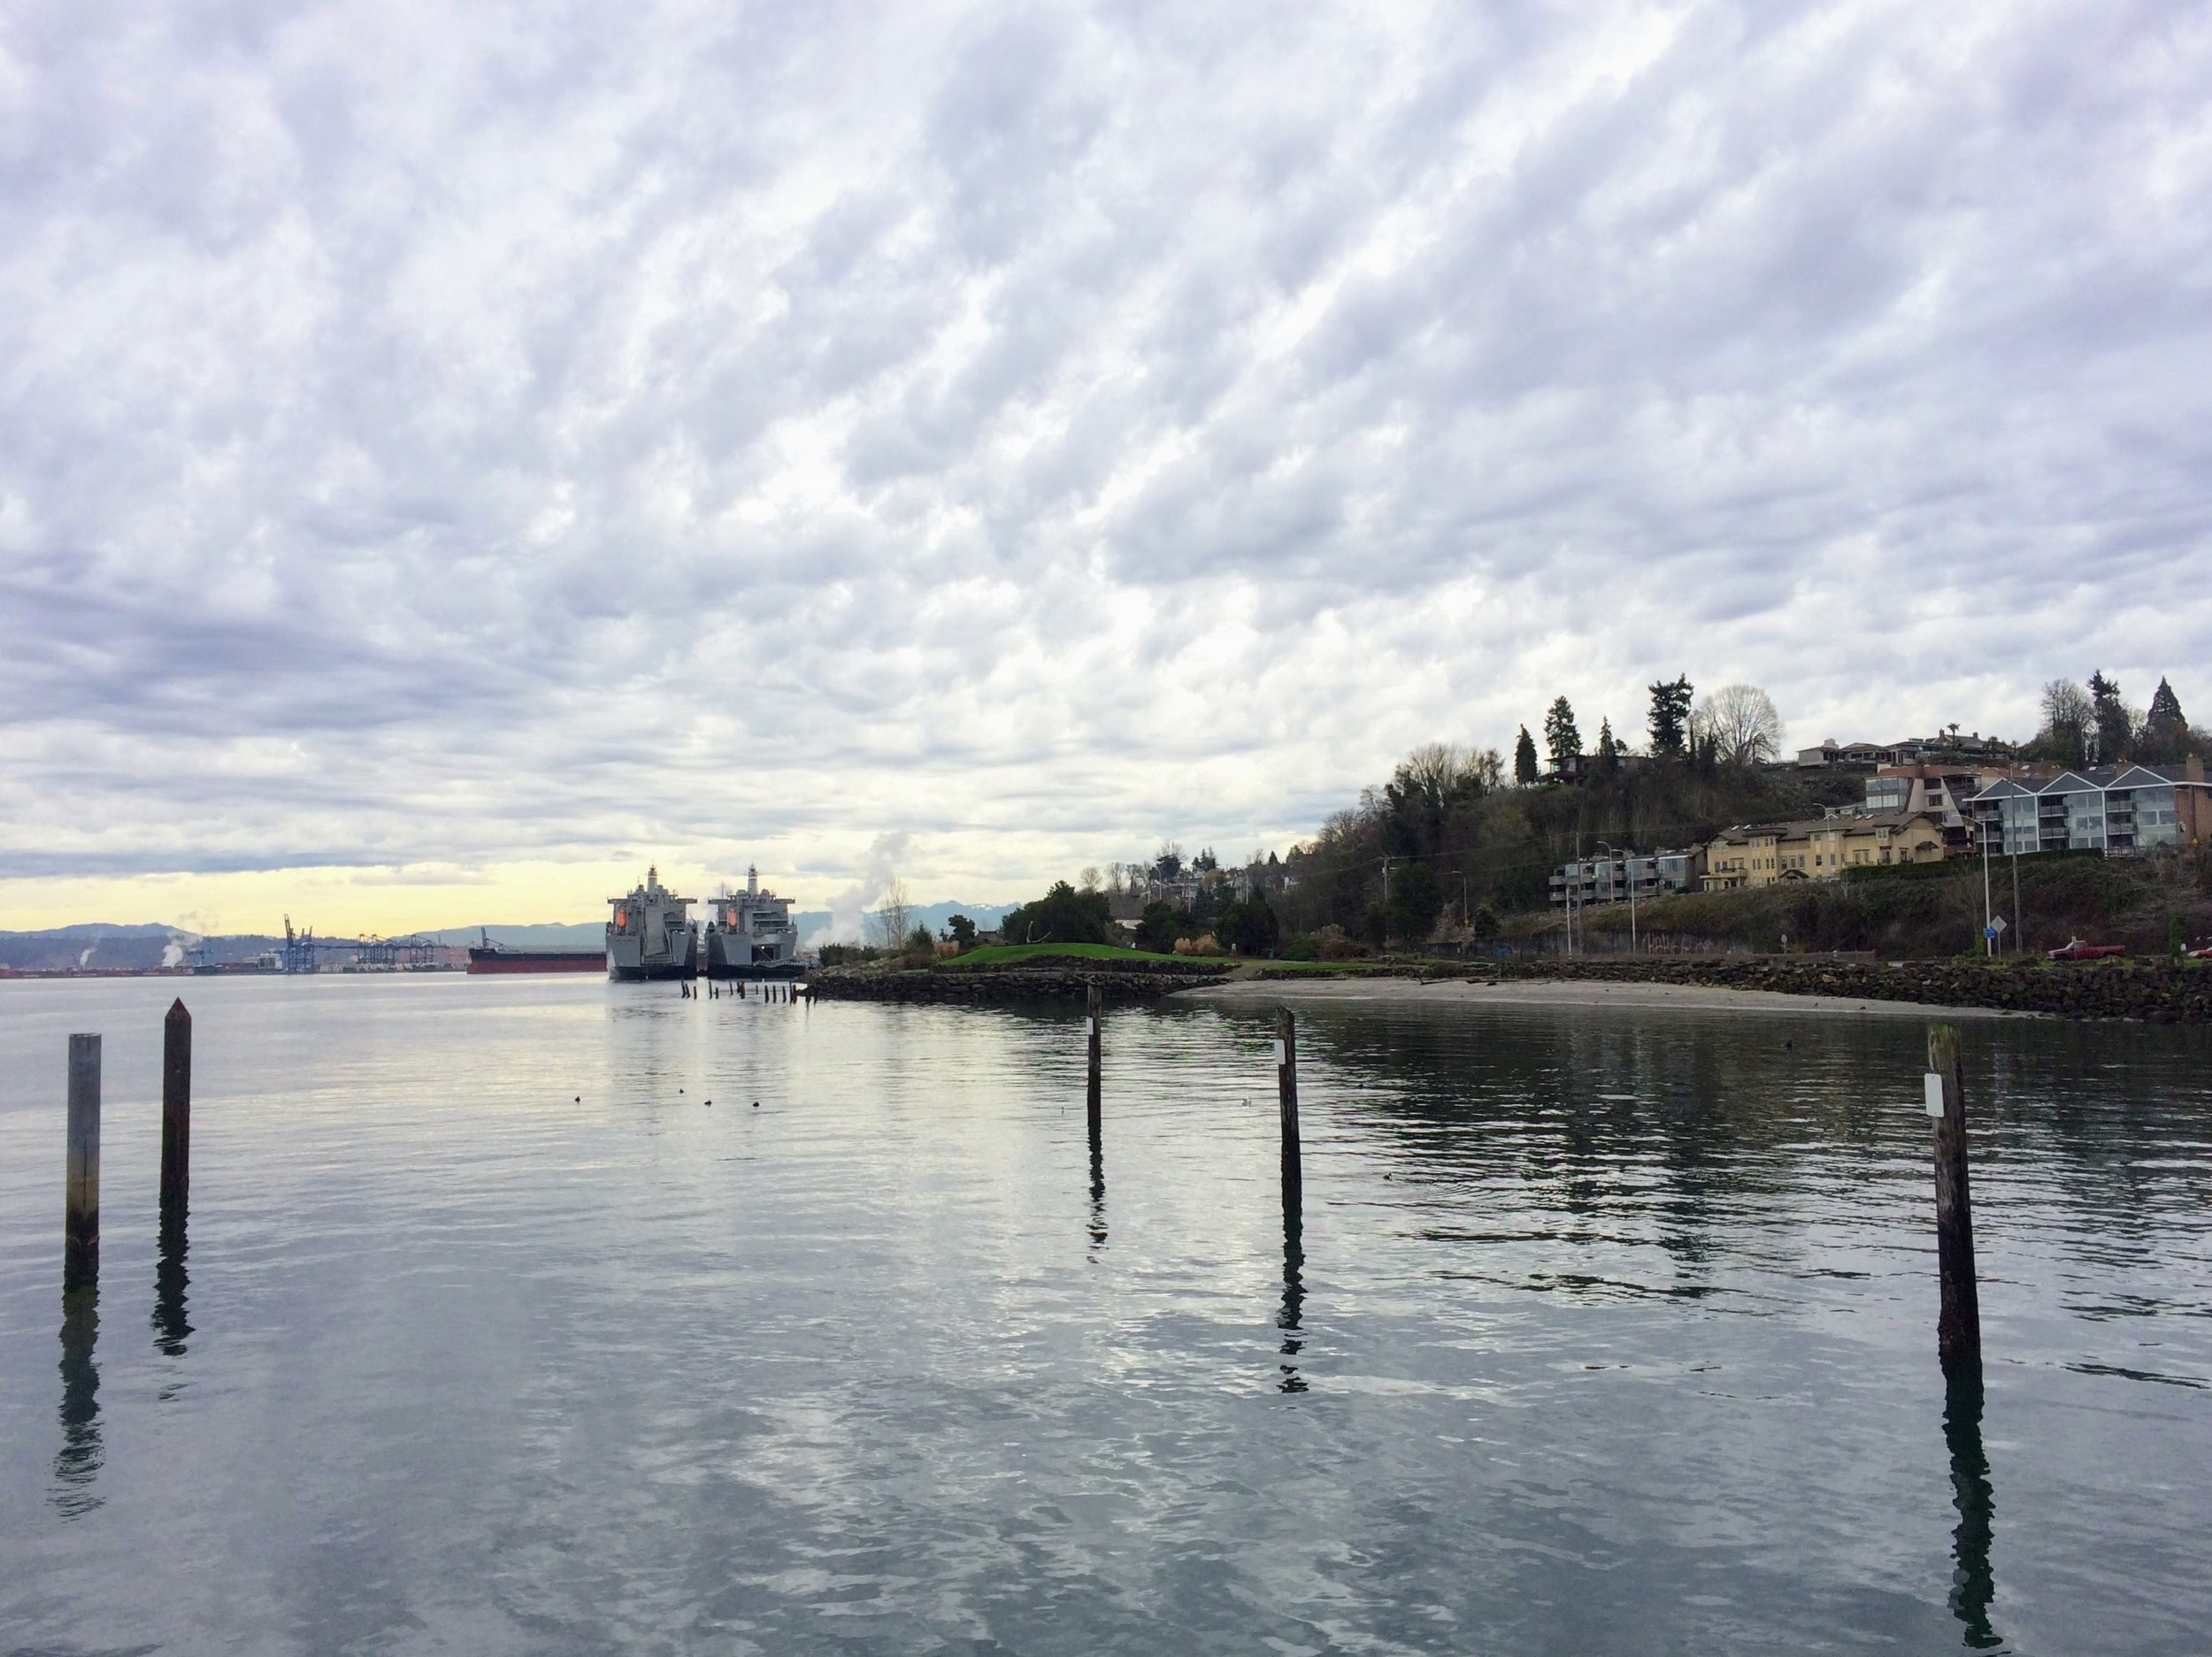 Looking south from the Old Town Dock past Jack Hyde Park to the Port of Tacoma.